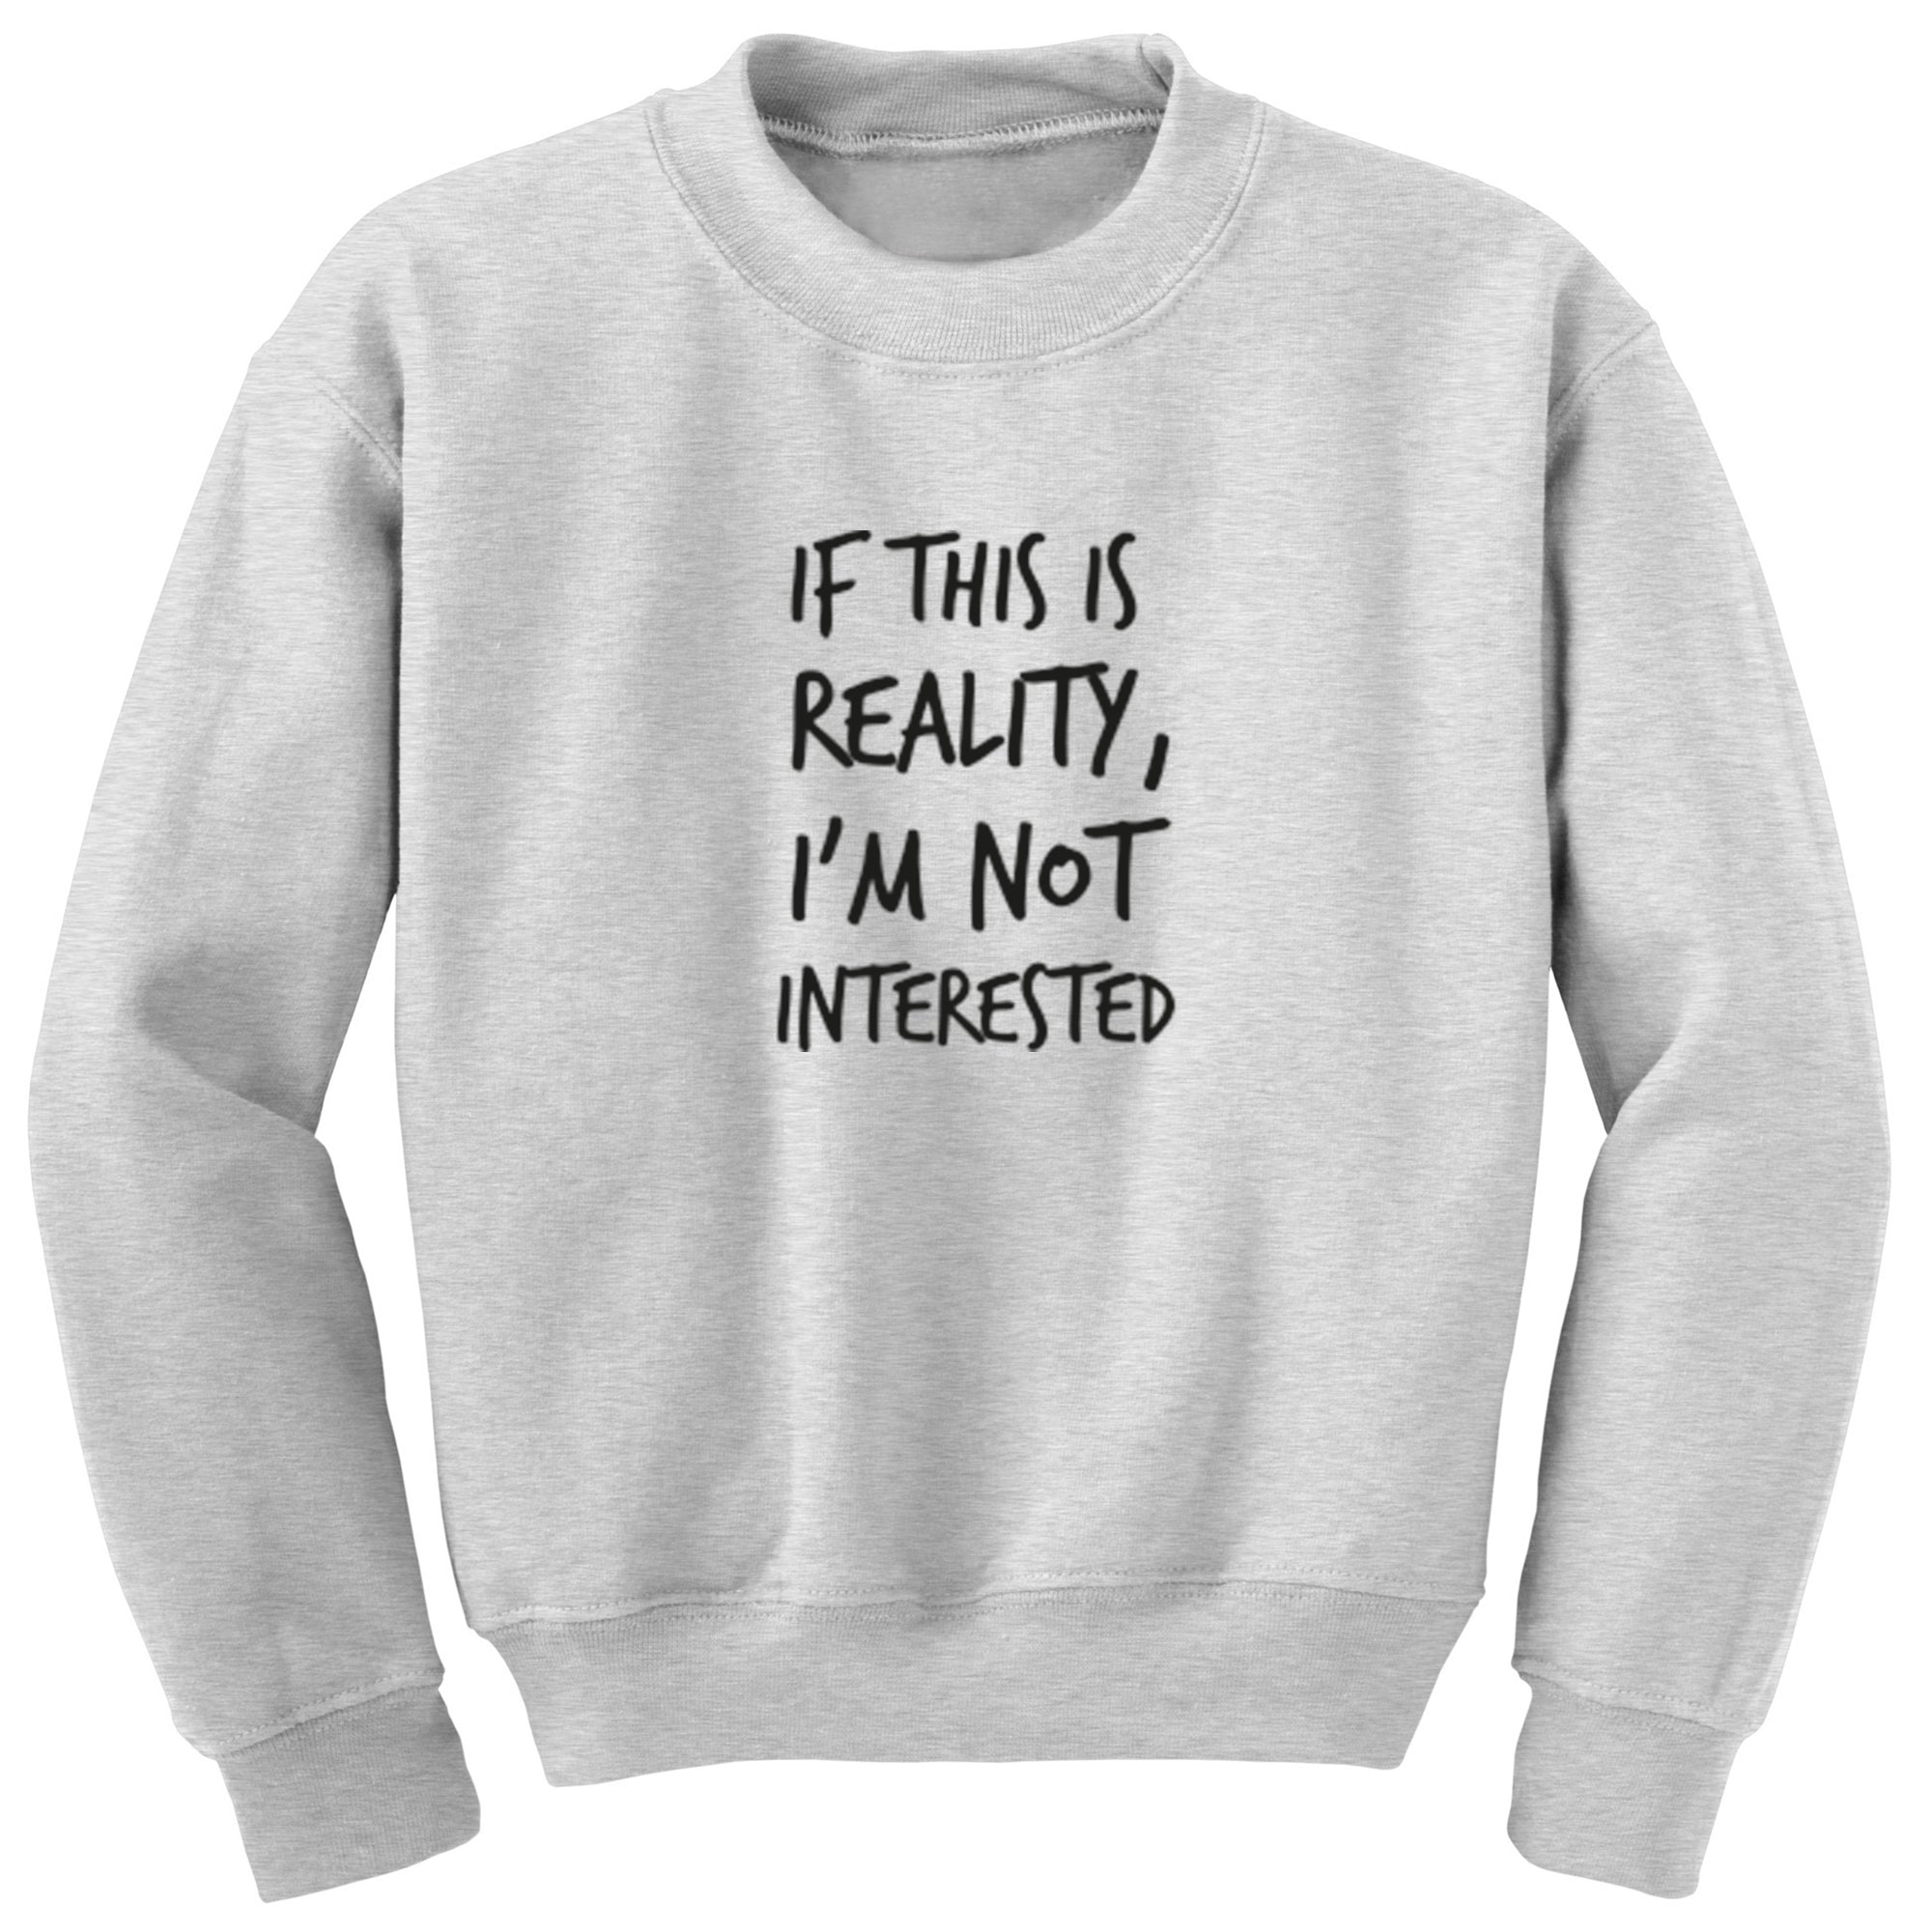 If This Is Reality, I'm Not Interested Unisex Jumper S0804